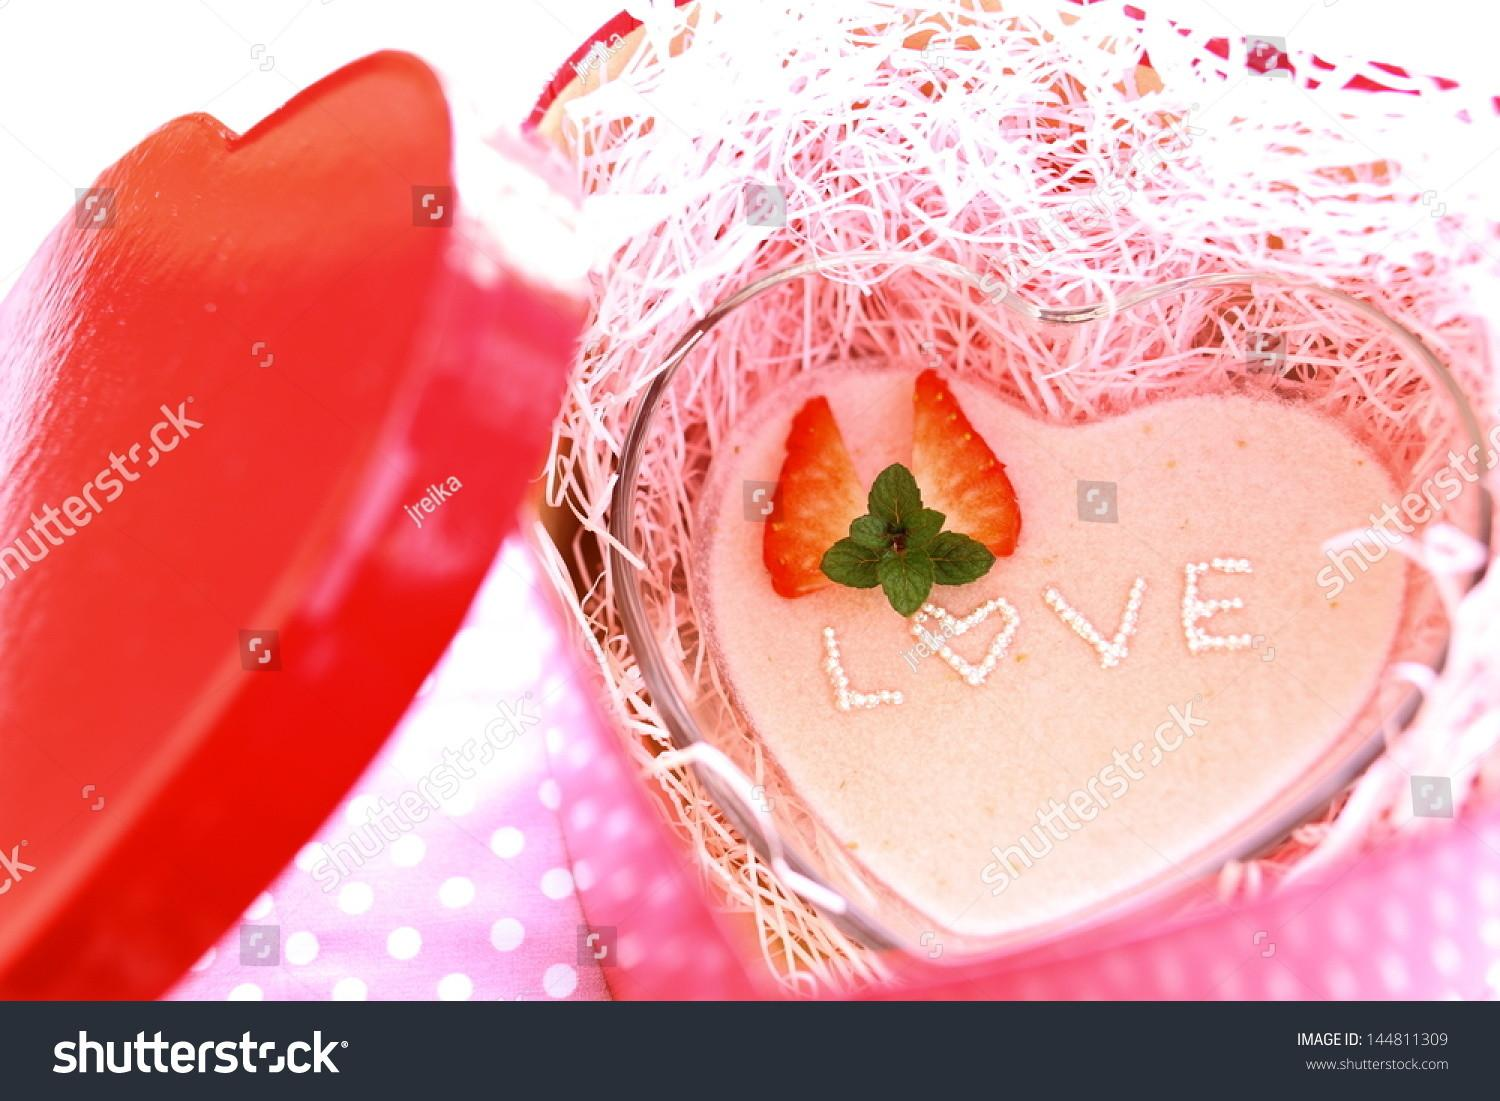 Homemade Heart Shaped Strawberry Mousse Love